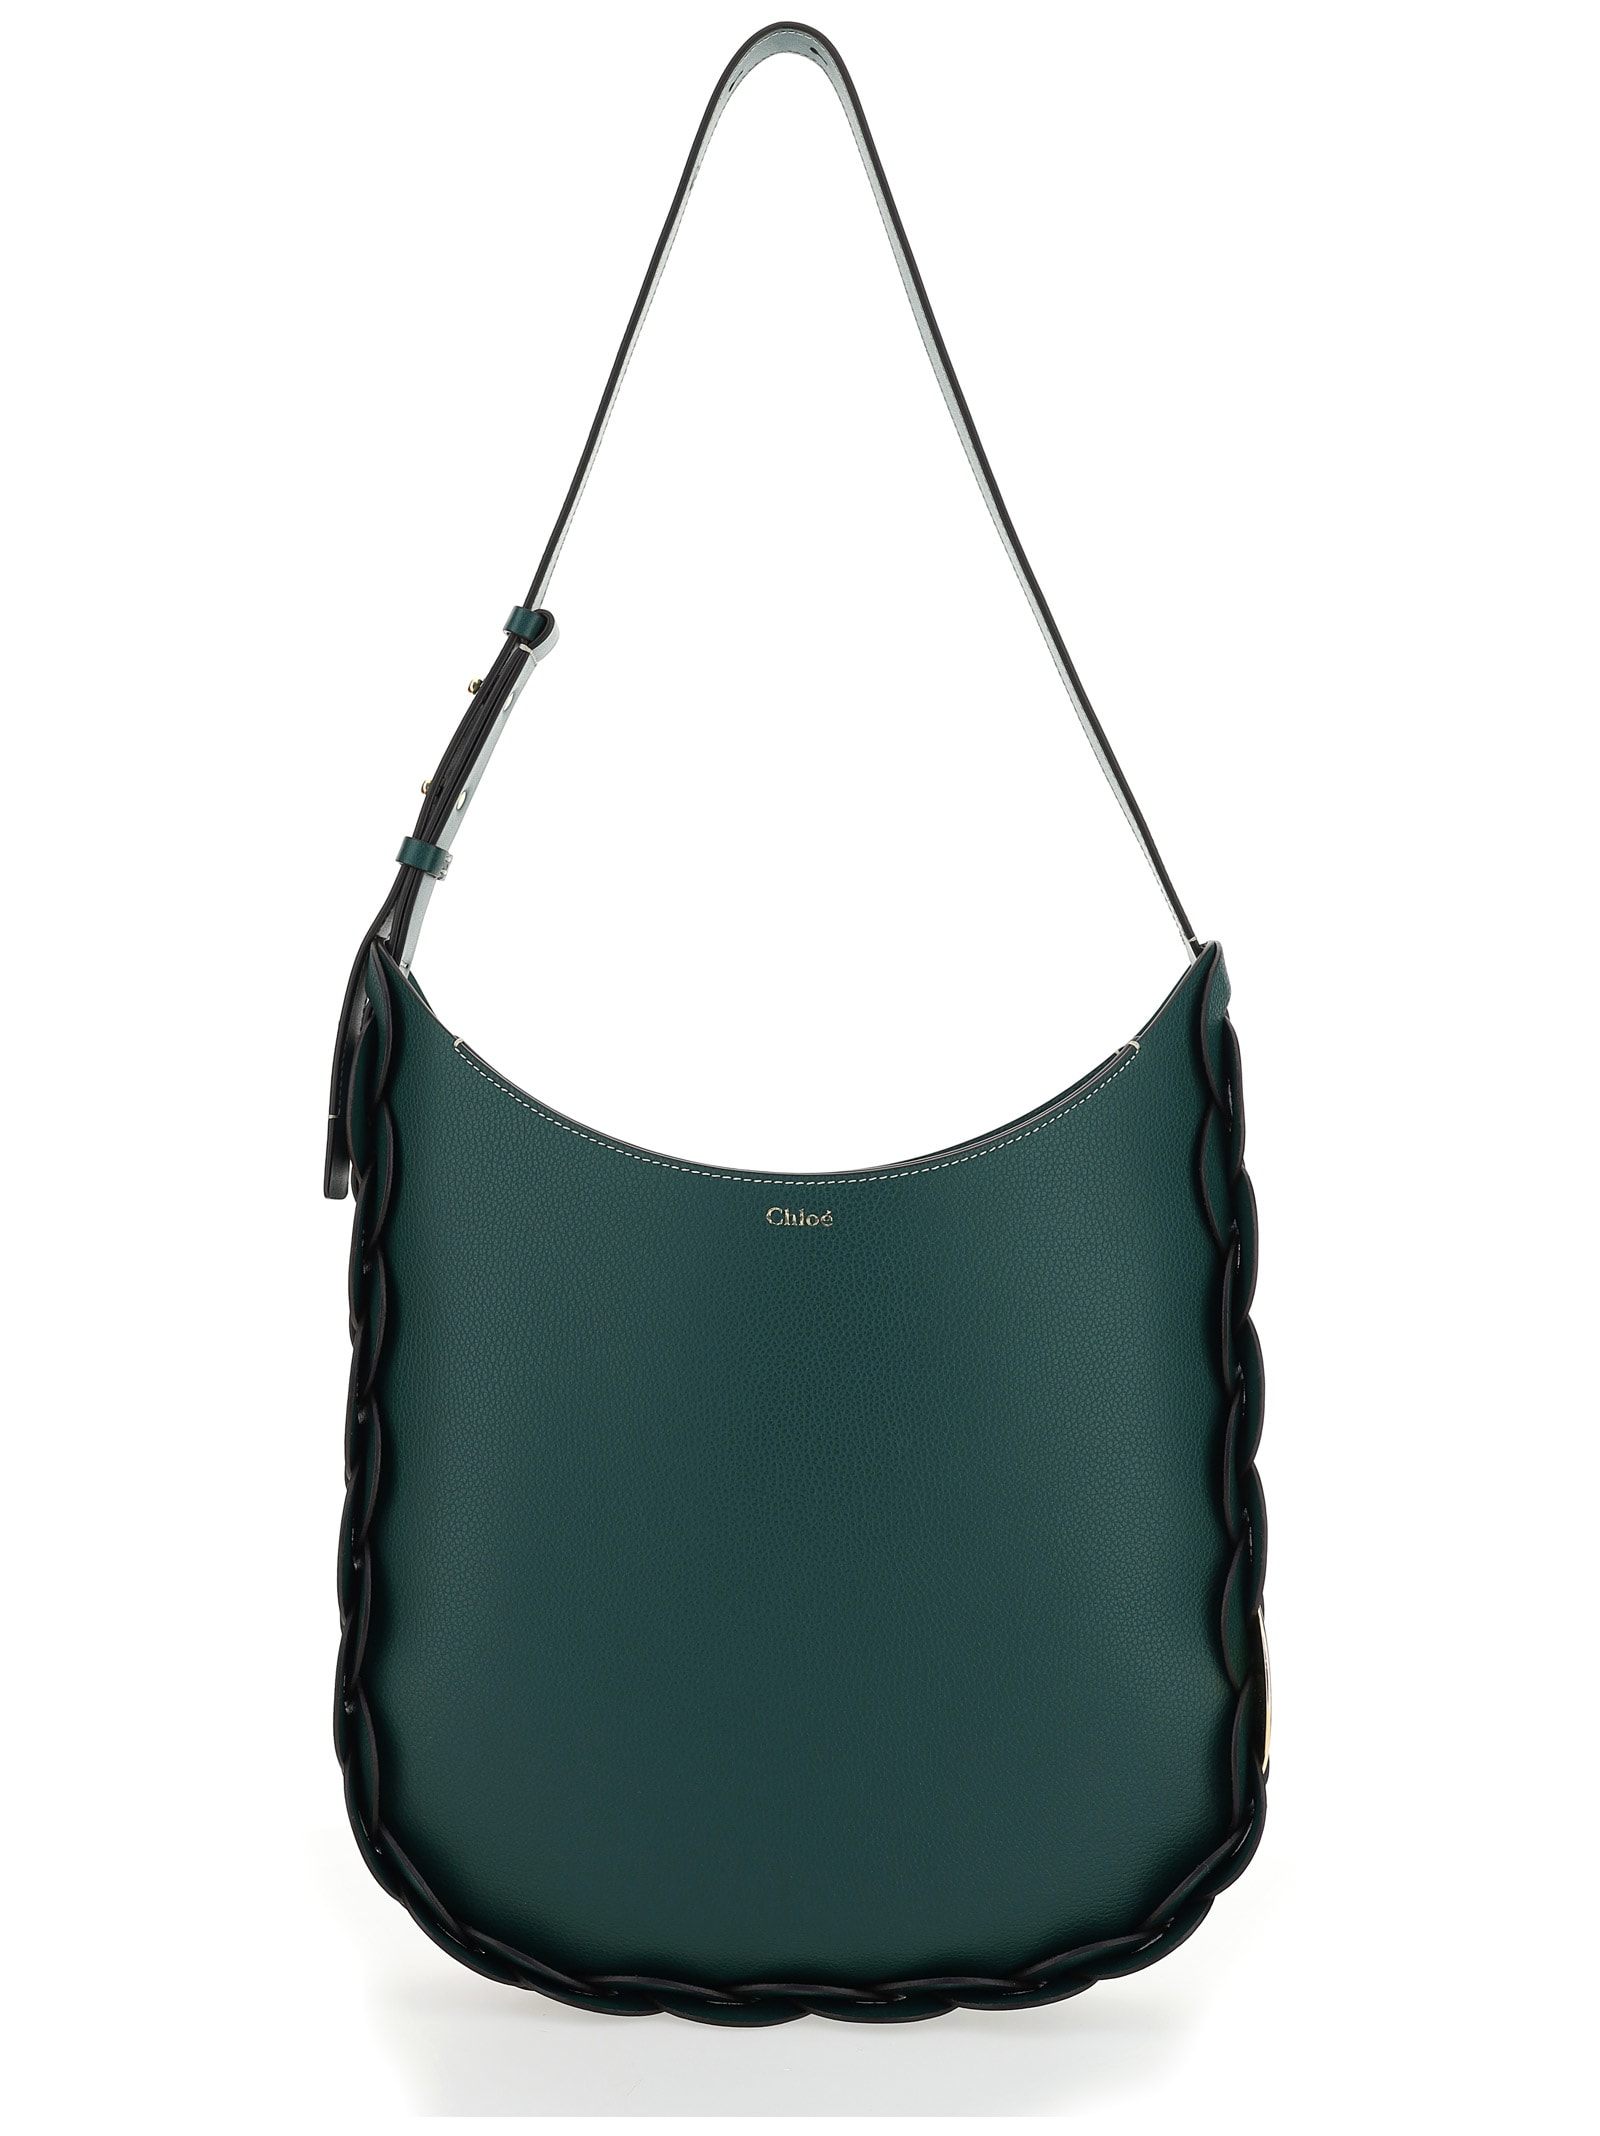 Chloé Leathers DARRYL MEDIUM SHOULDER BAG